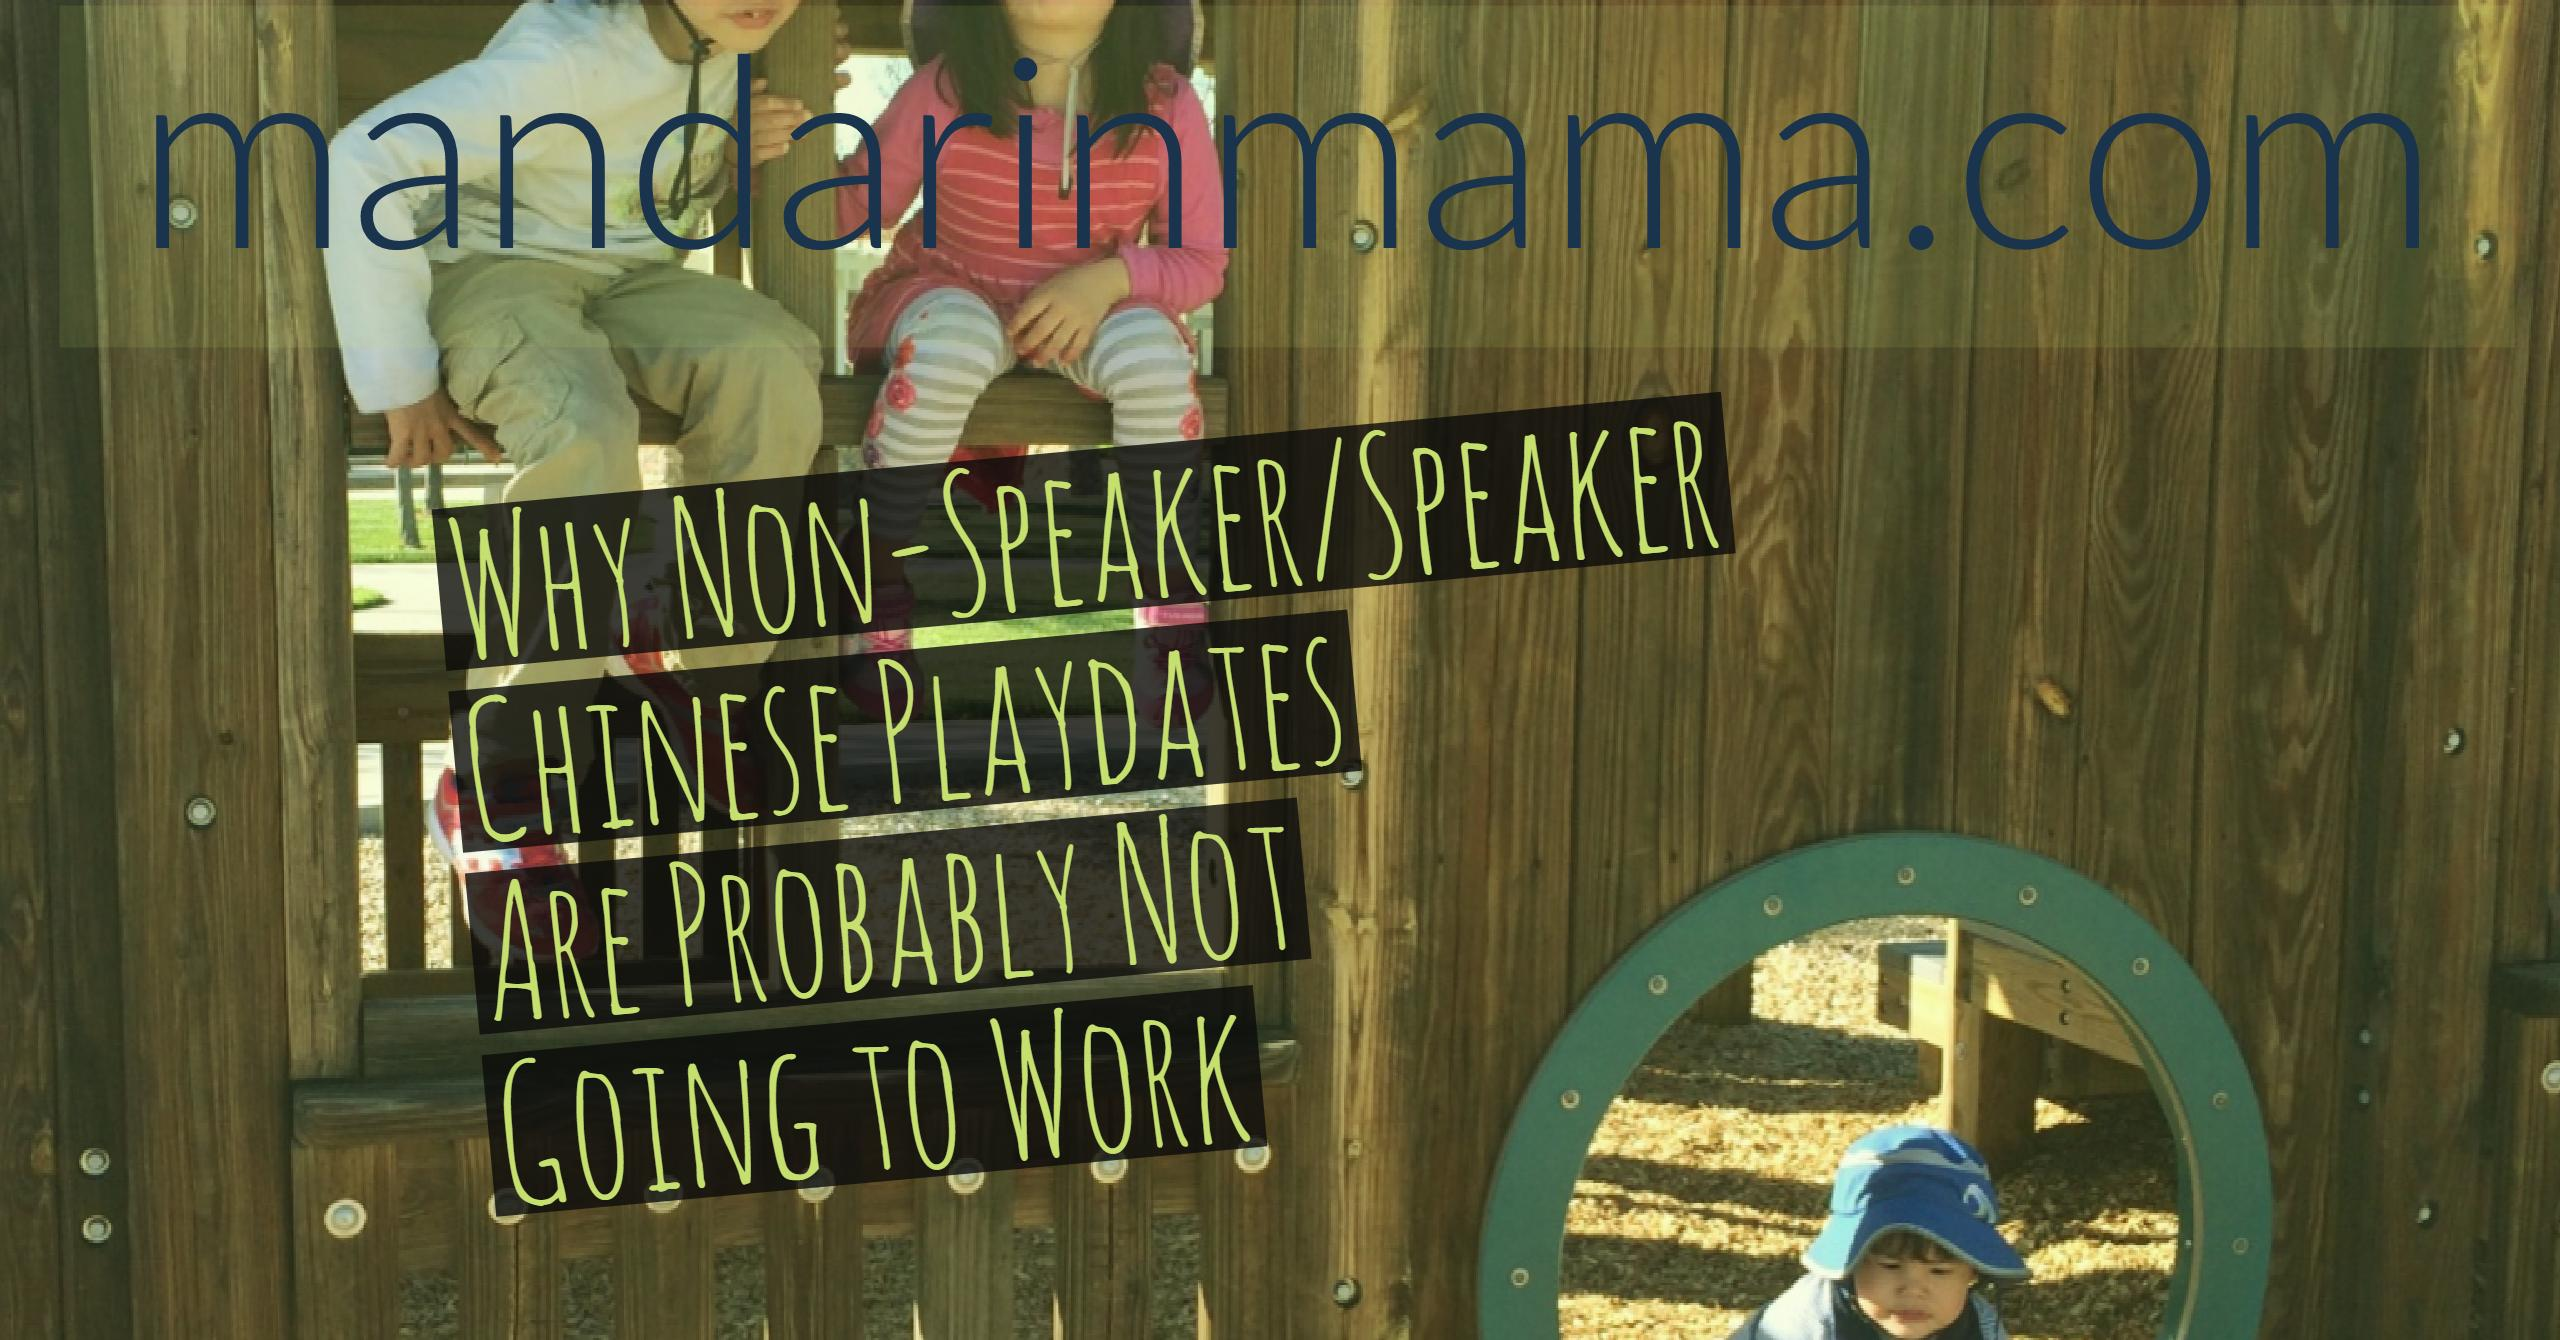 Why non speakerspeaker chinese playdates are probably not going why non speakerspeaker chinese playdates are probably not going to work mandarin mama fandeluxe Epub